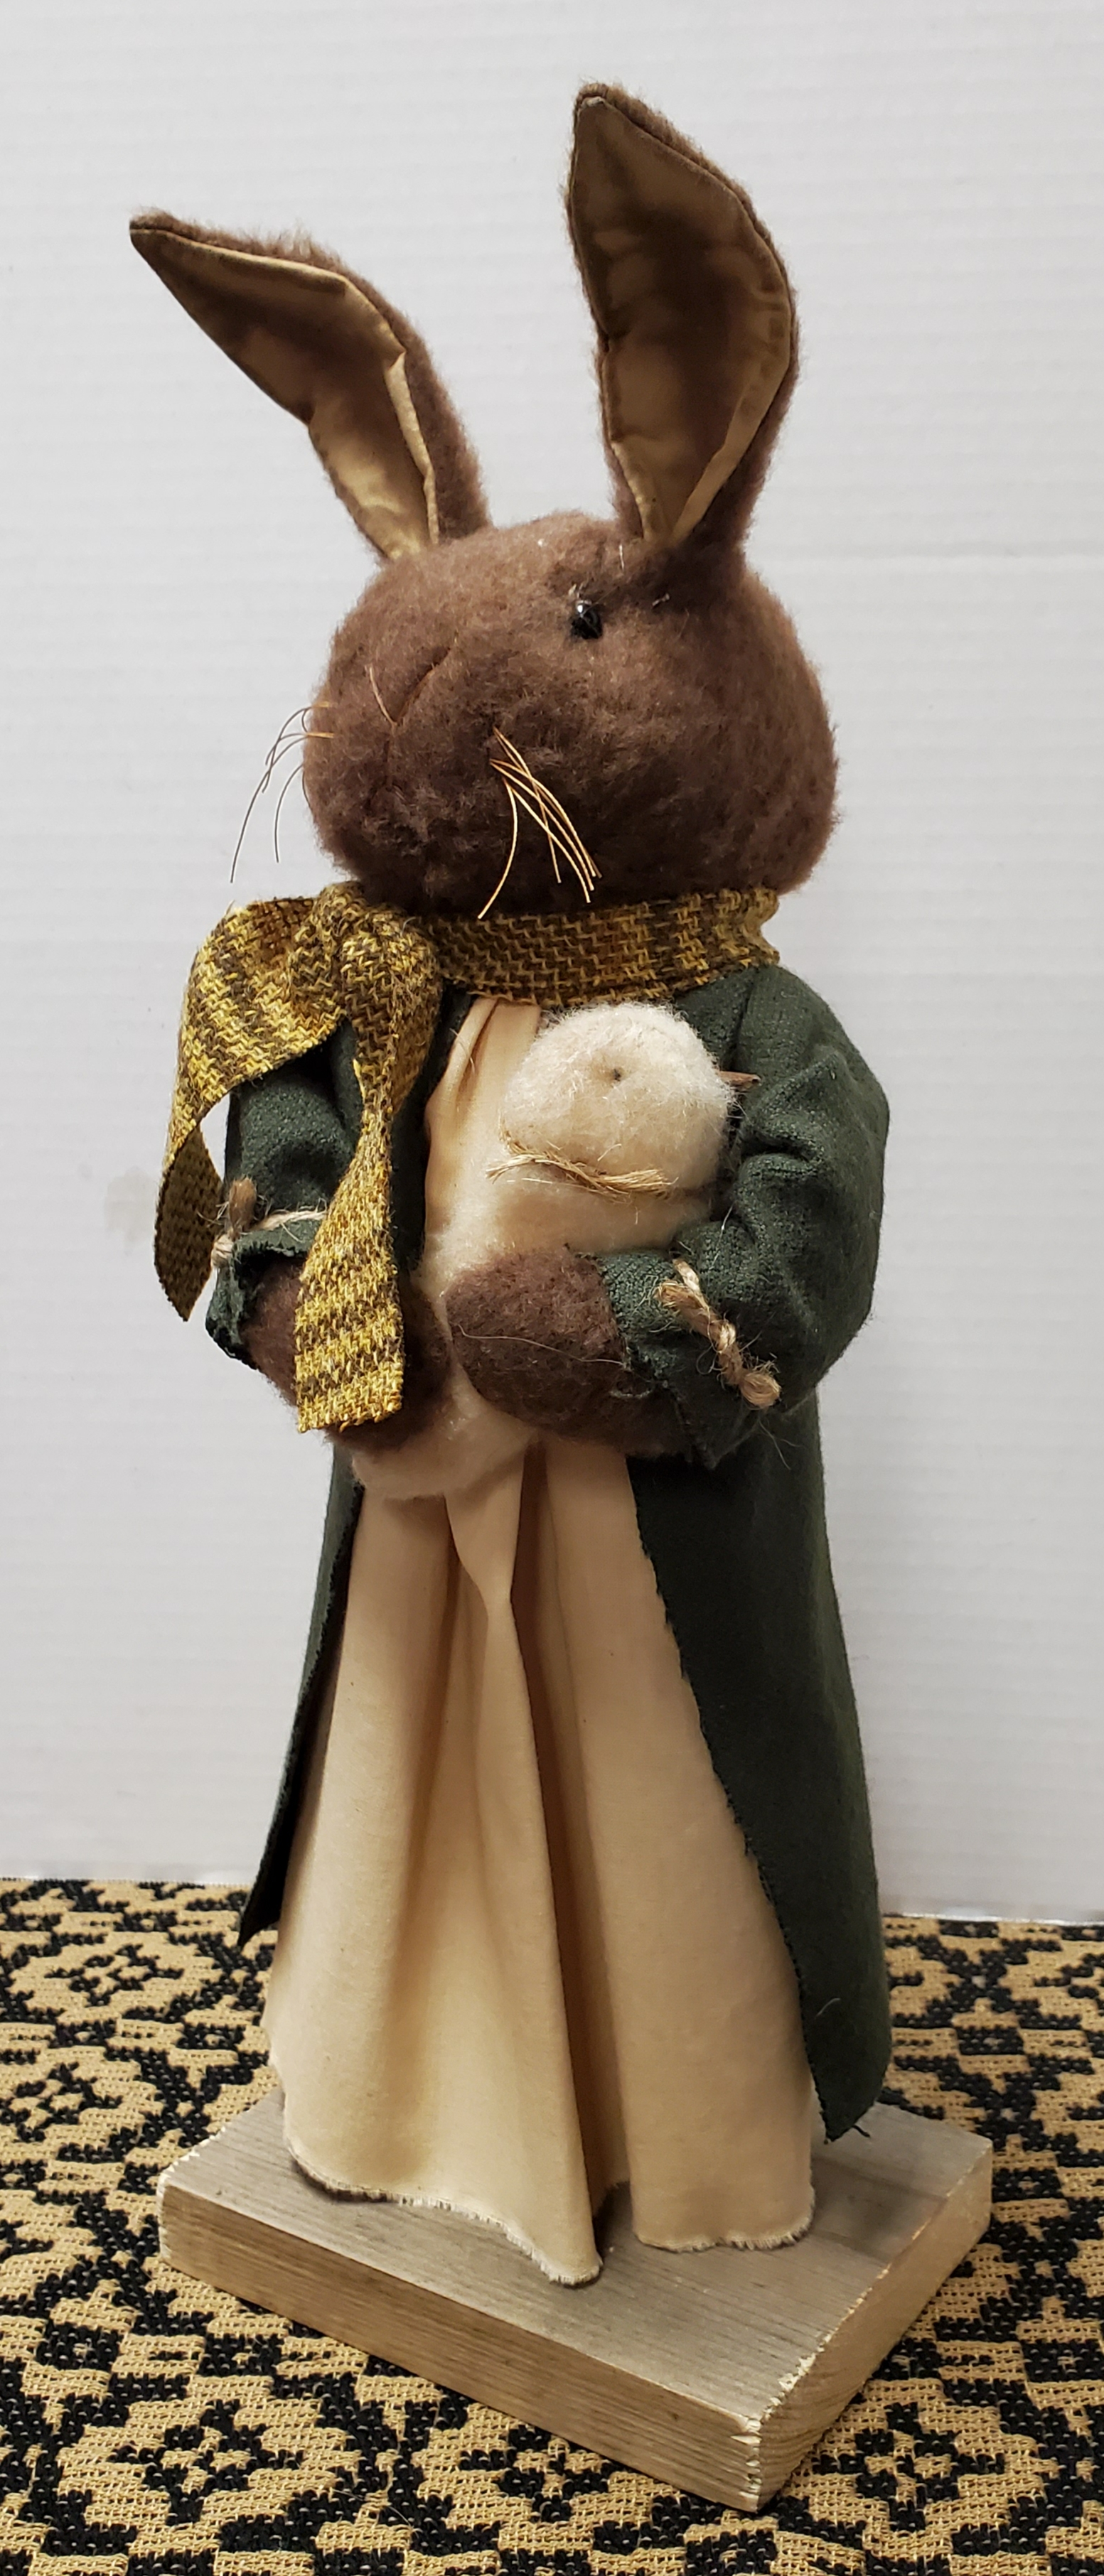 Brown Bunny with Muslin Dress and Green Coat Holding Chick